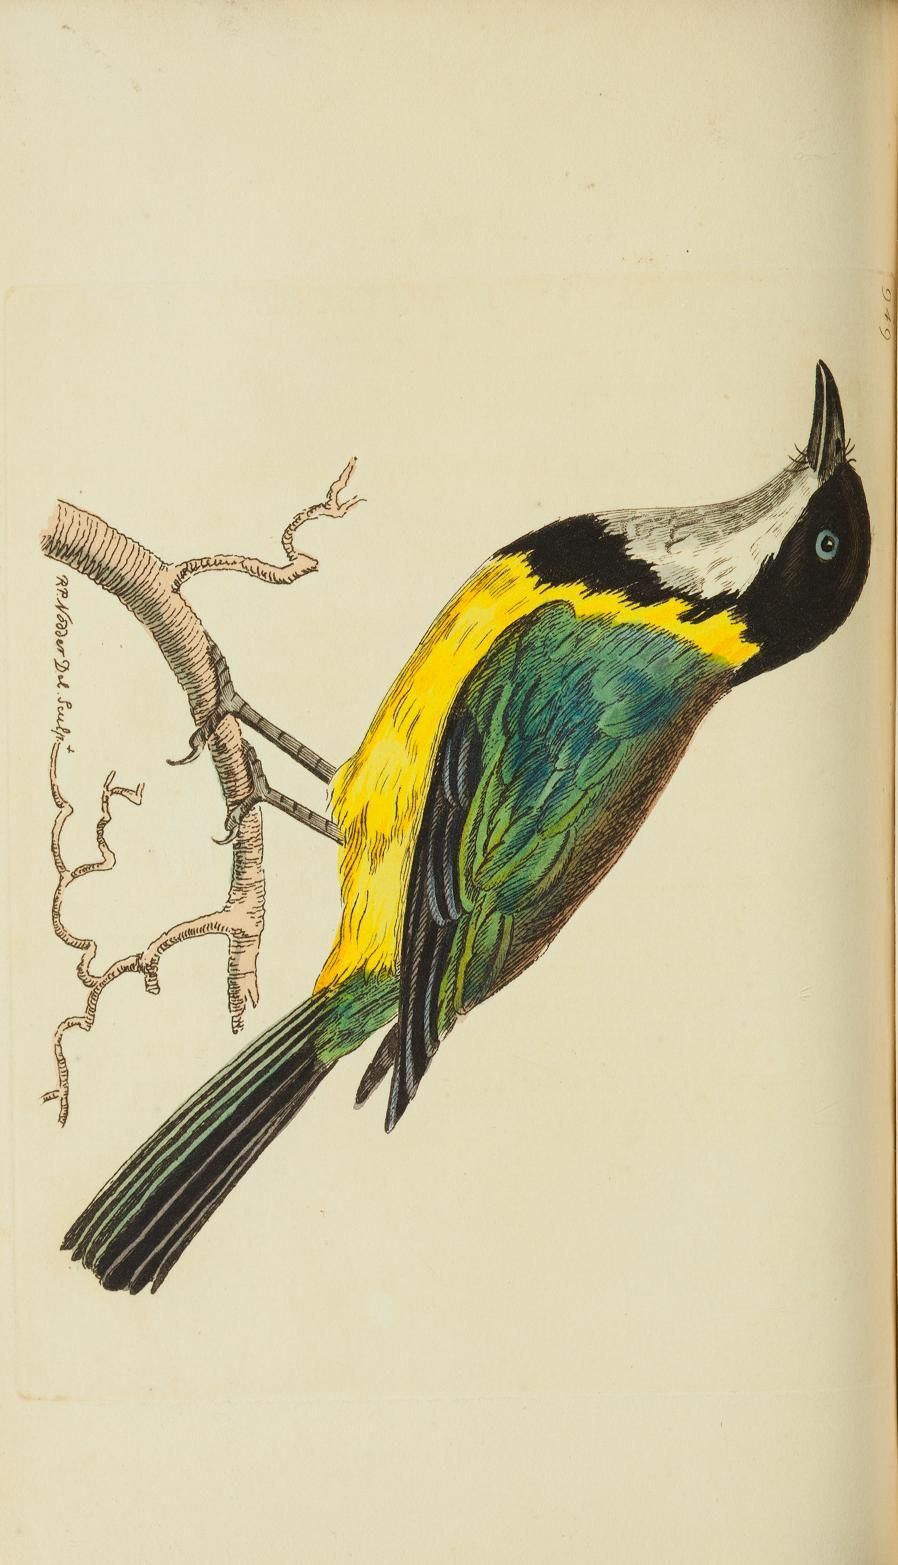 v.22 - The naturalist's miscellany, or Coloured figures of natural objects - Biodiversity Heritage Library